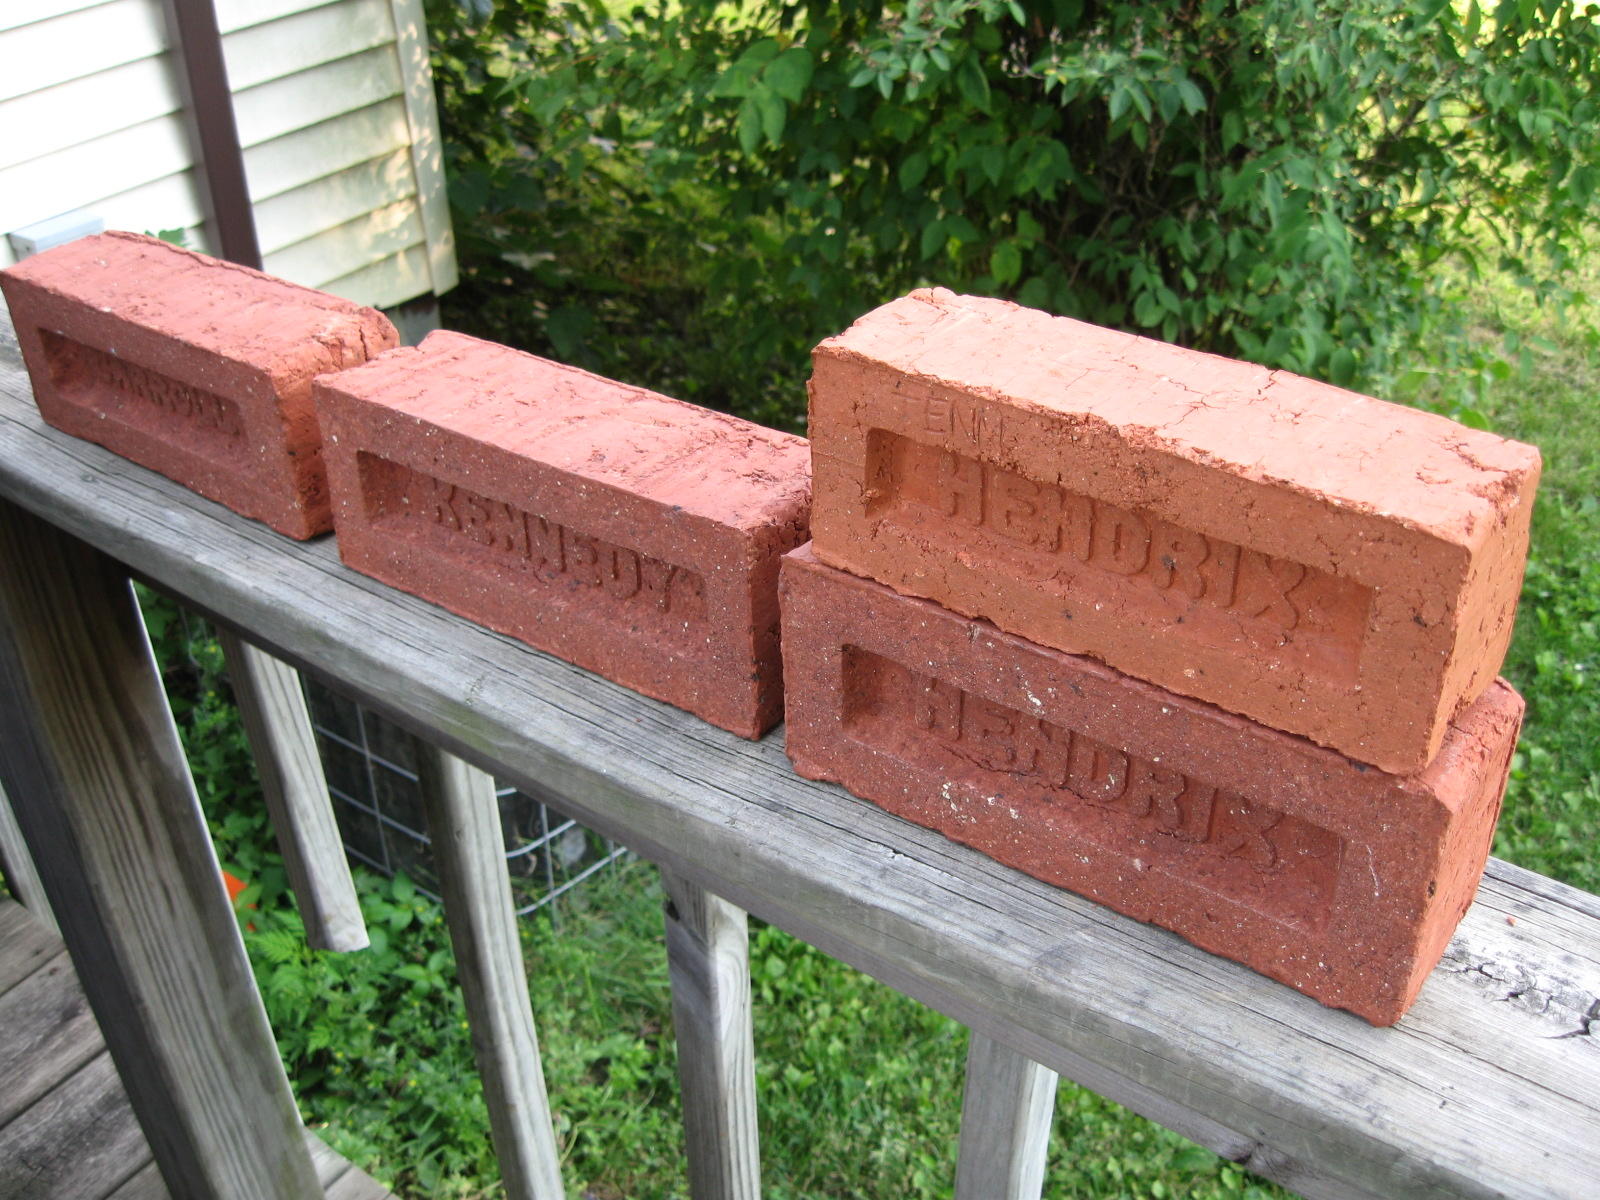 How Do You Make Clay Bricks : Make your own bricks tennessee red clay test firing